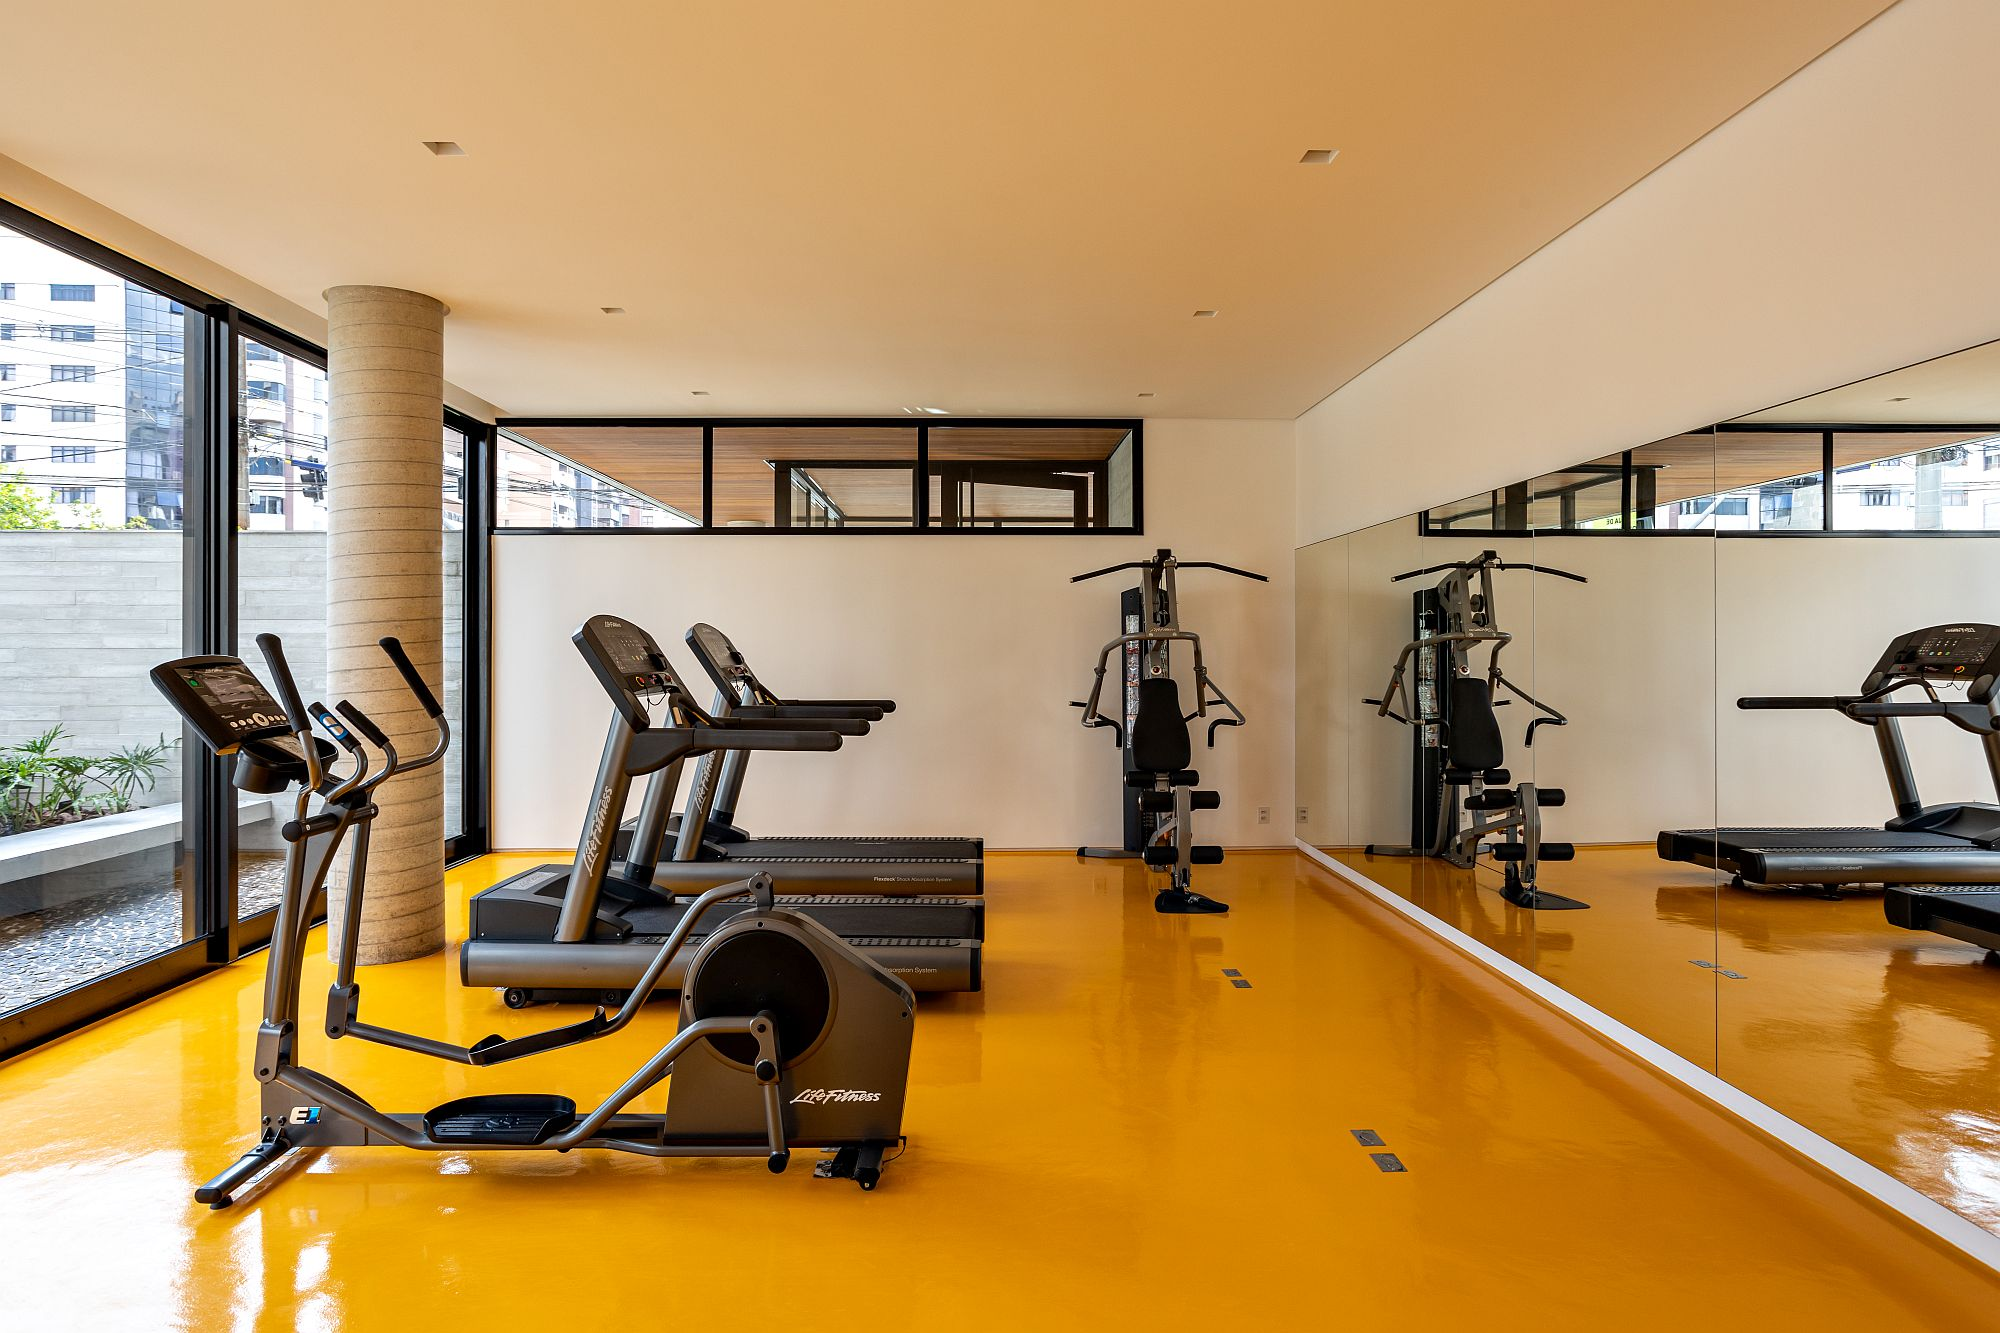 Bright and beautiful yellow floor of the gym area grabs your attention